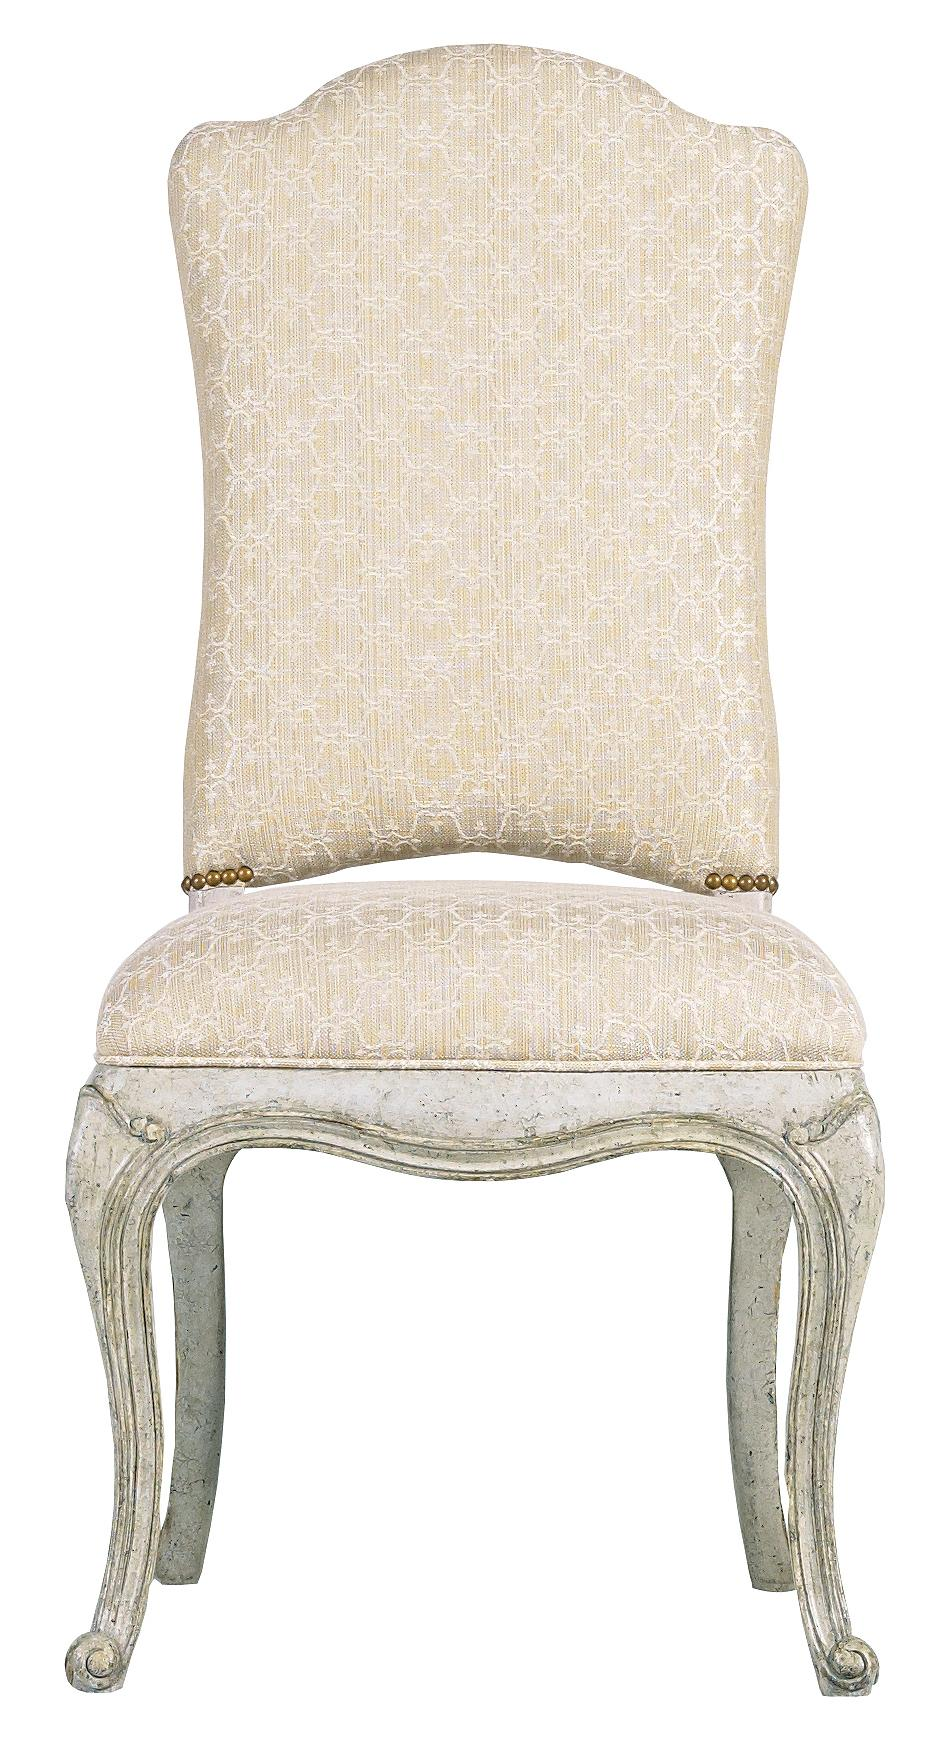 Stanley Furniture Arrondissement Volute Side Chair - Item Number: 222-21-65